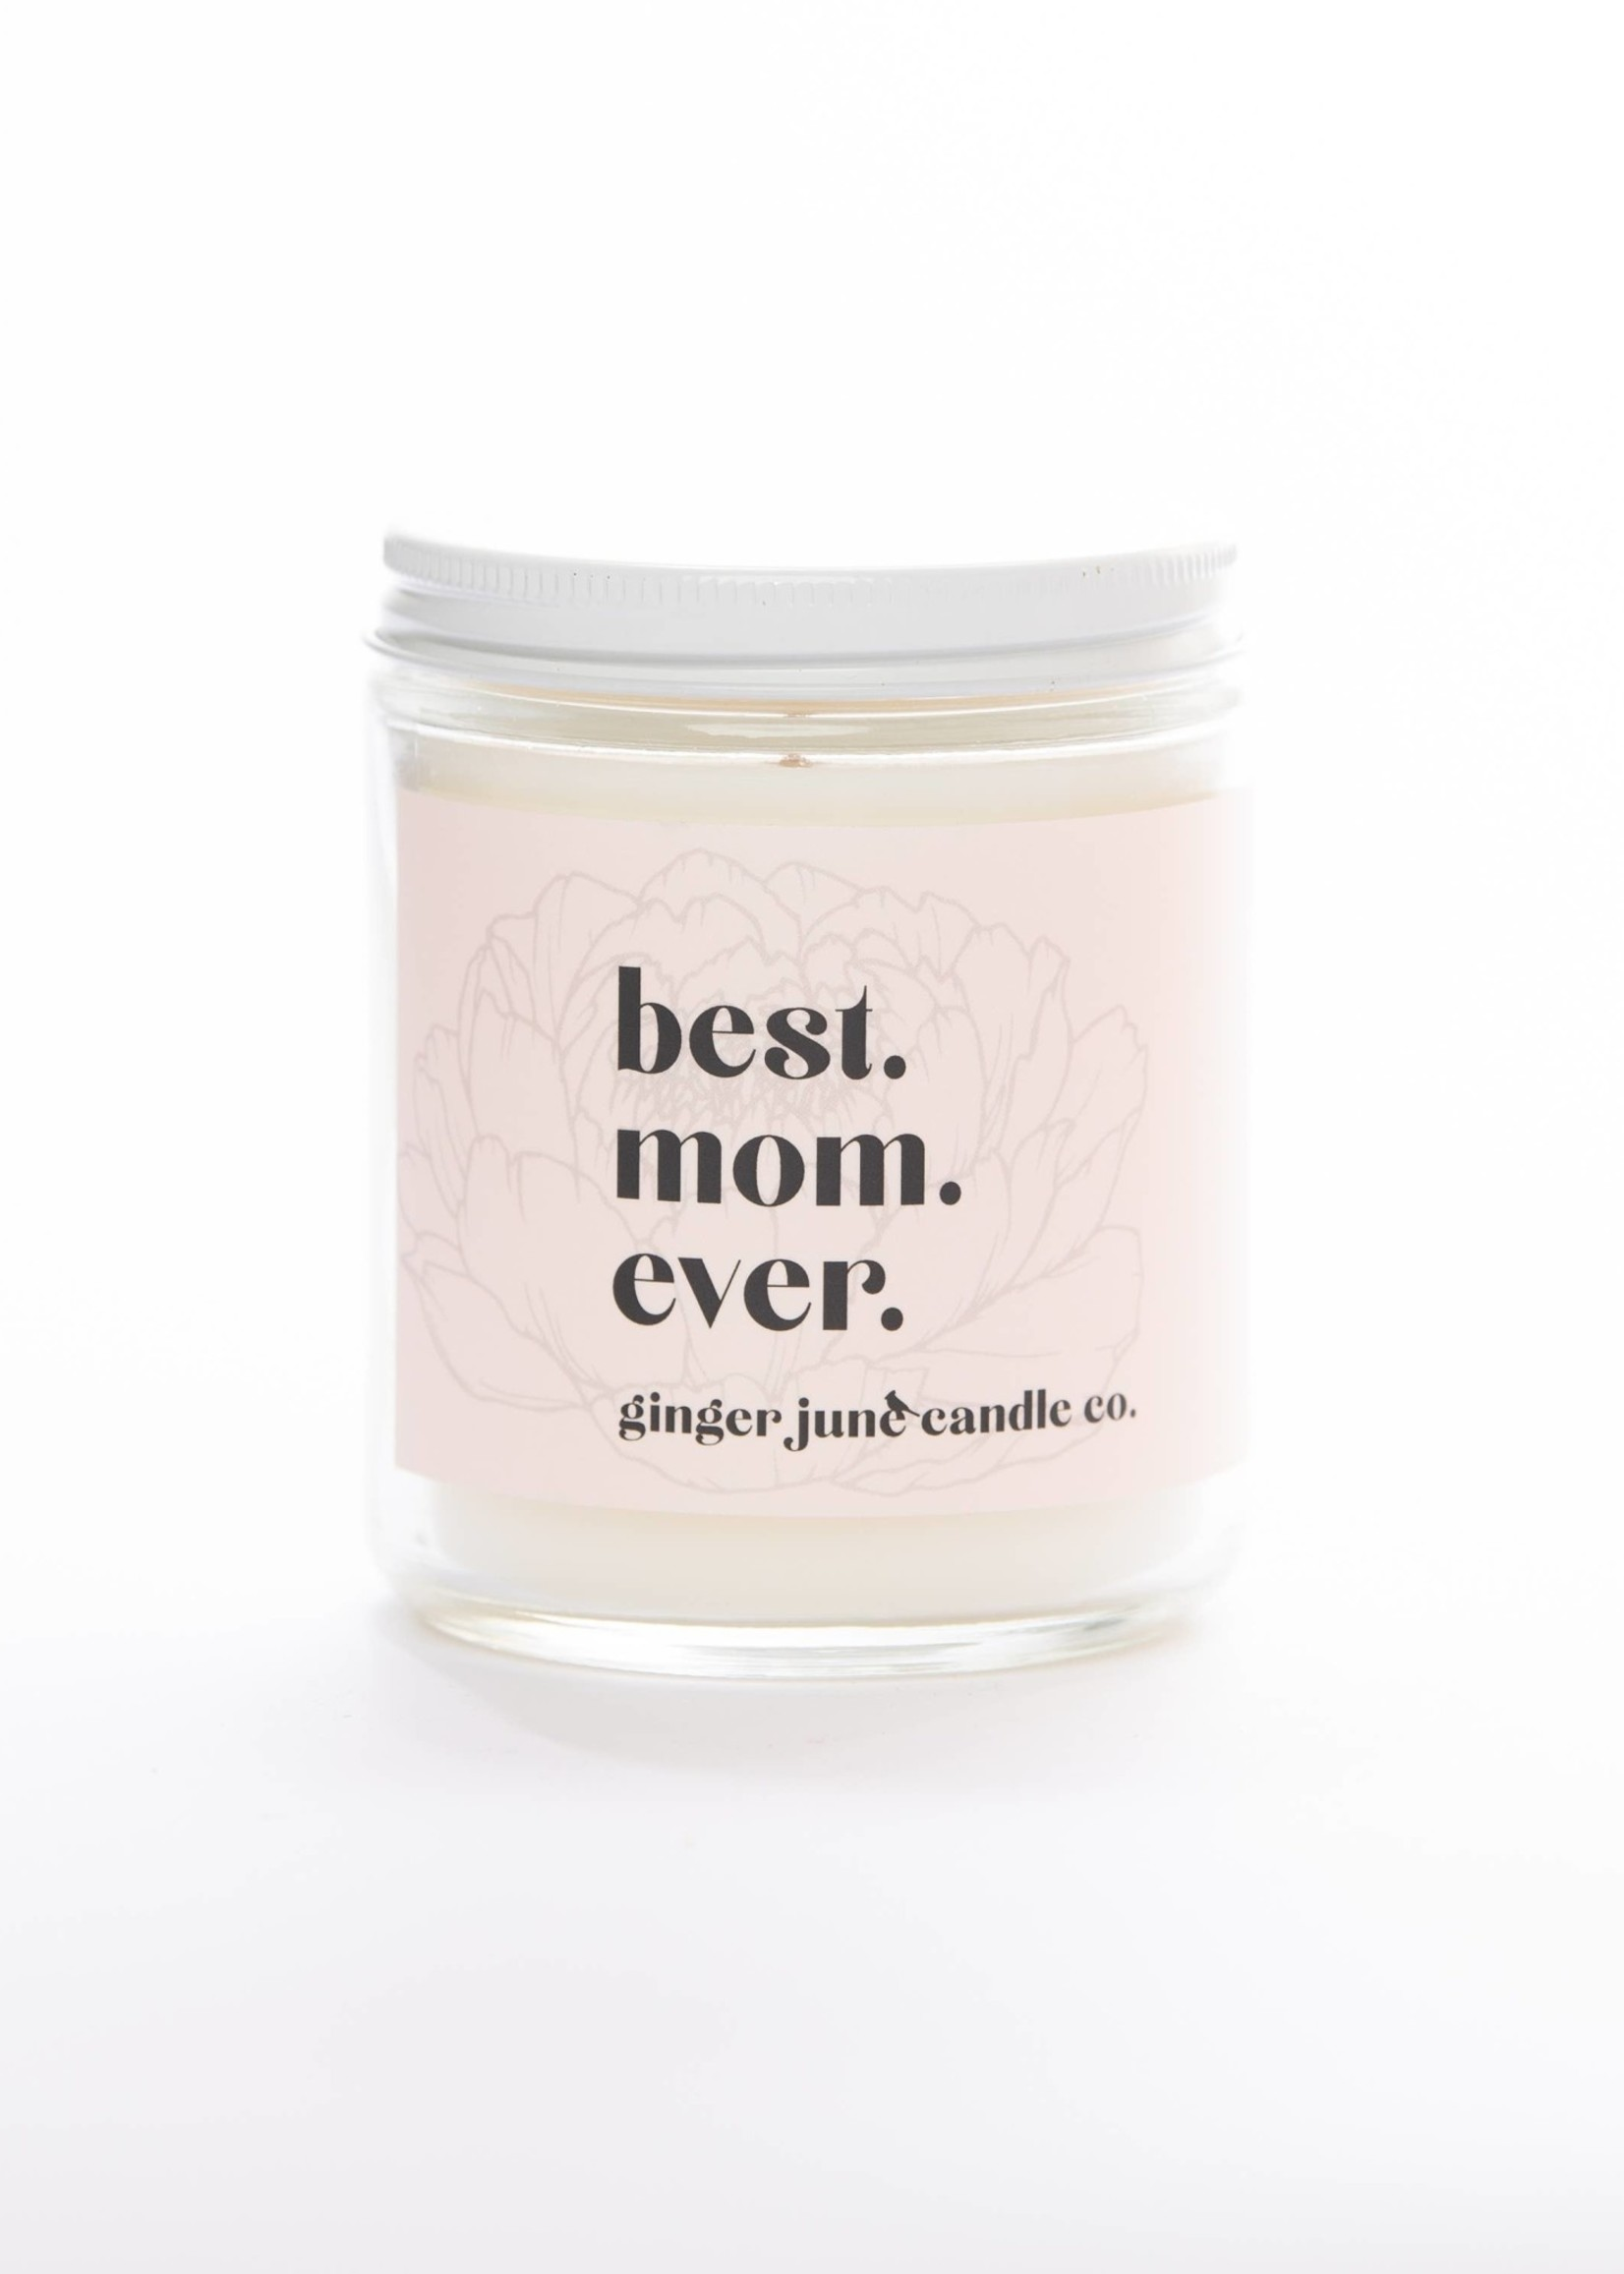 Ginger June Candle Co. BEST MOM EVER • NON TOXIC SOY CANDLE